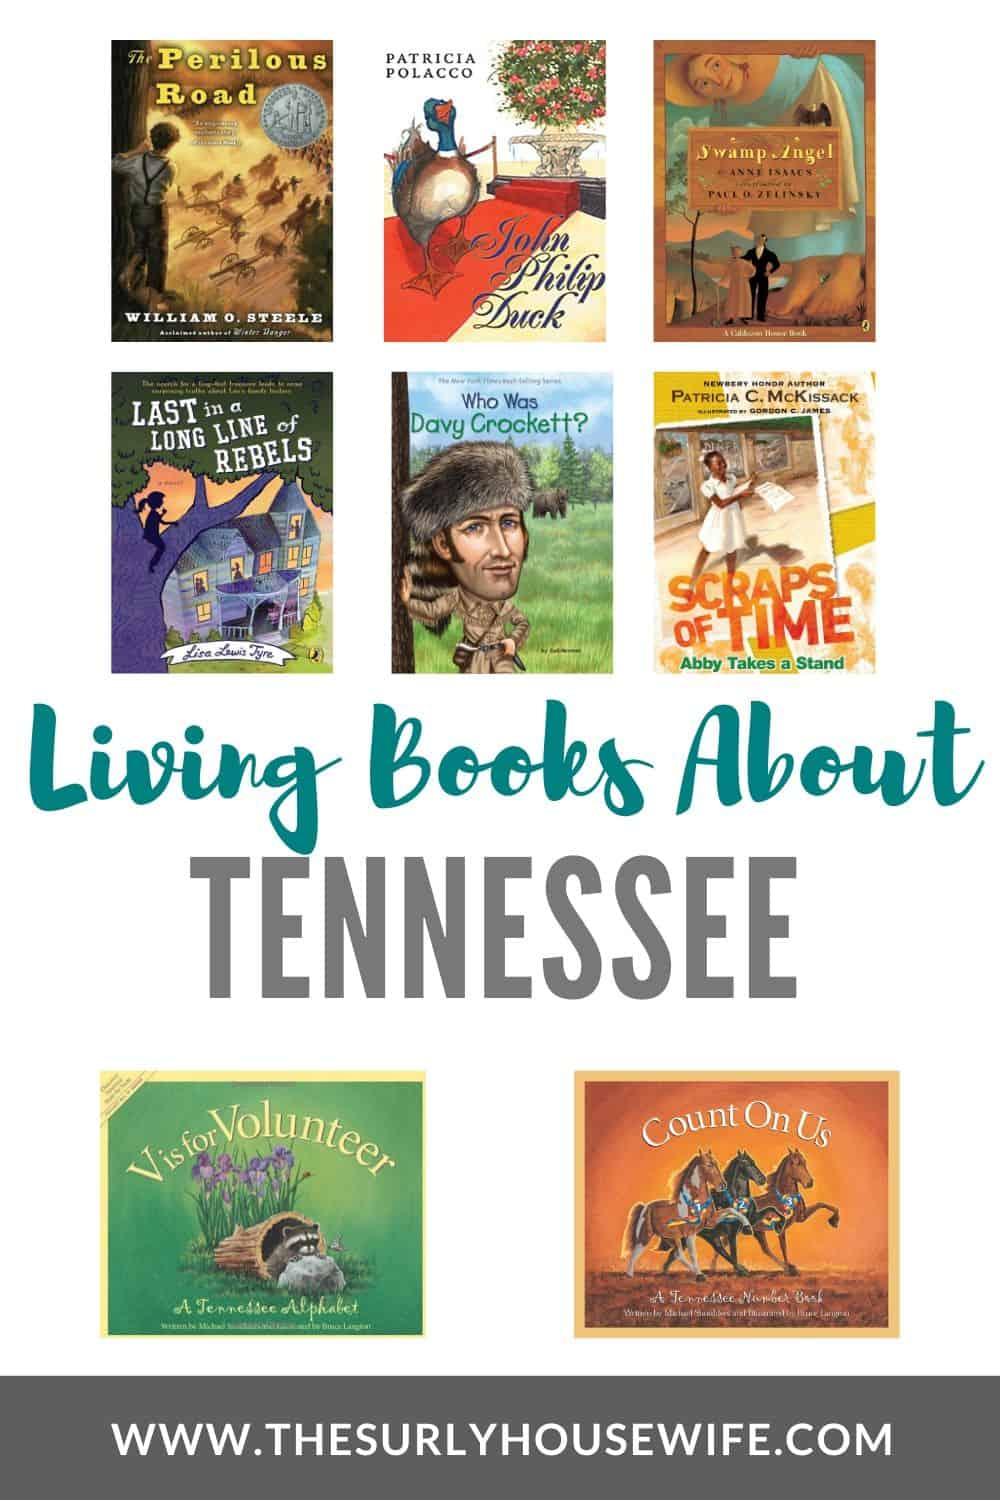 Searching for books about Tennessee, then check out this post! It has children's books, chapter books, and picture books perfect for a state unity study!